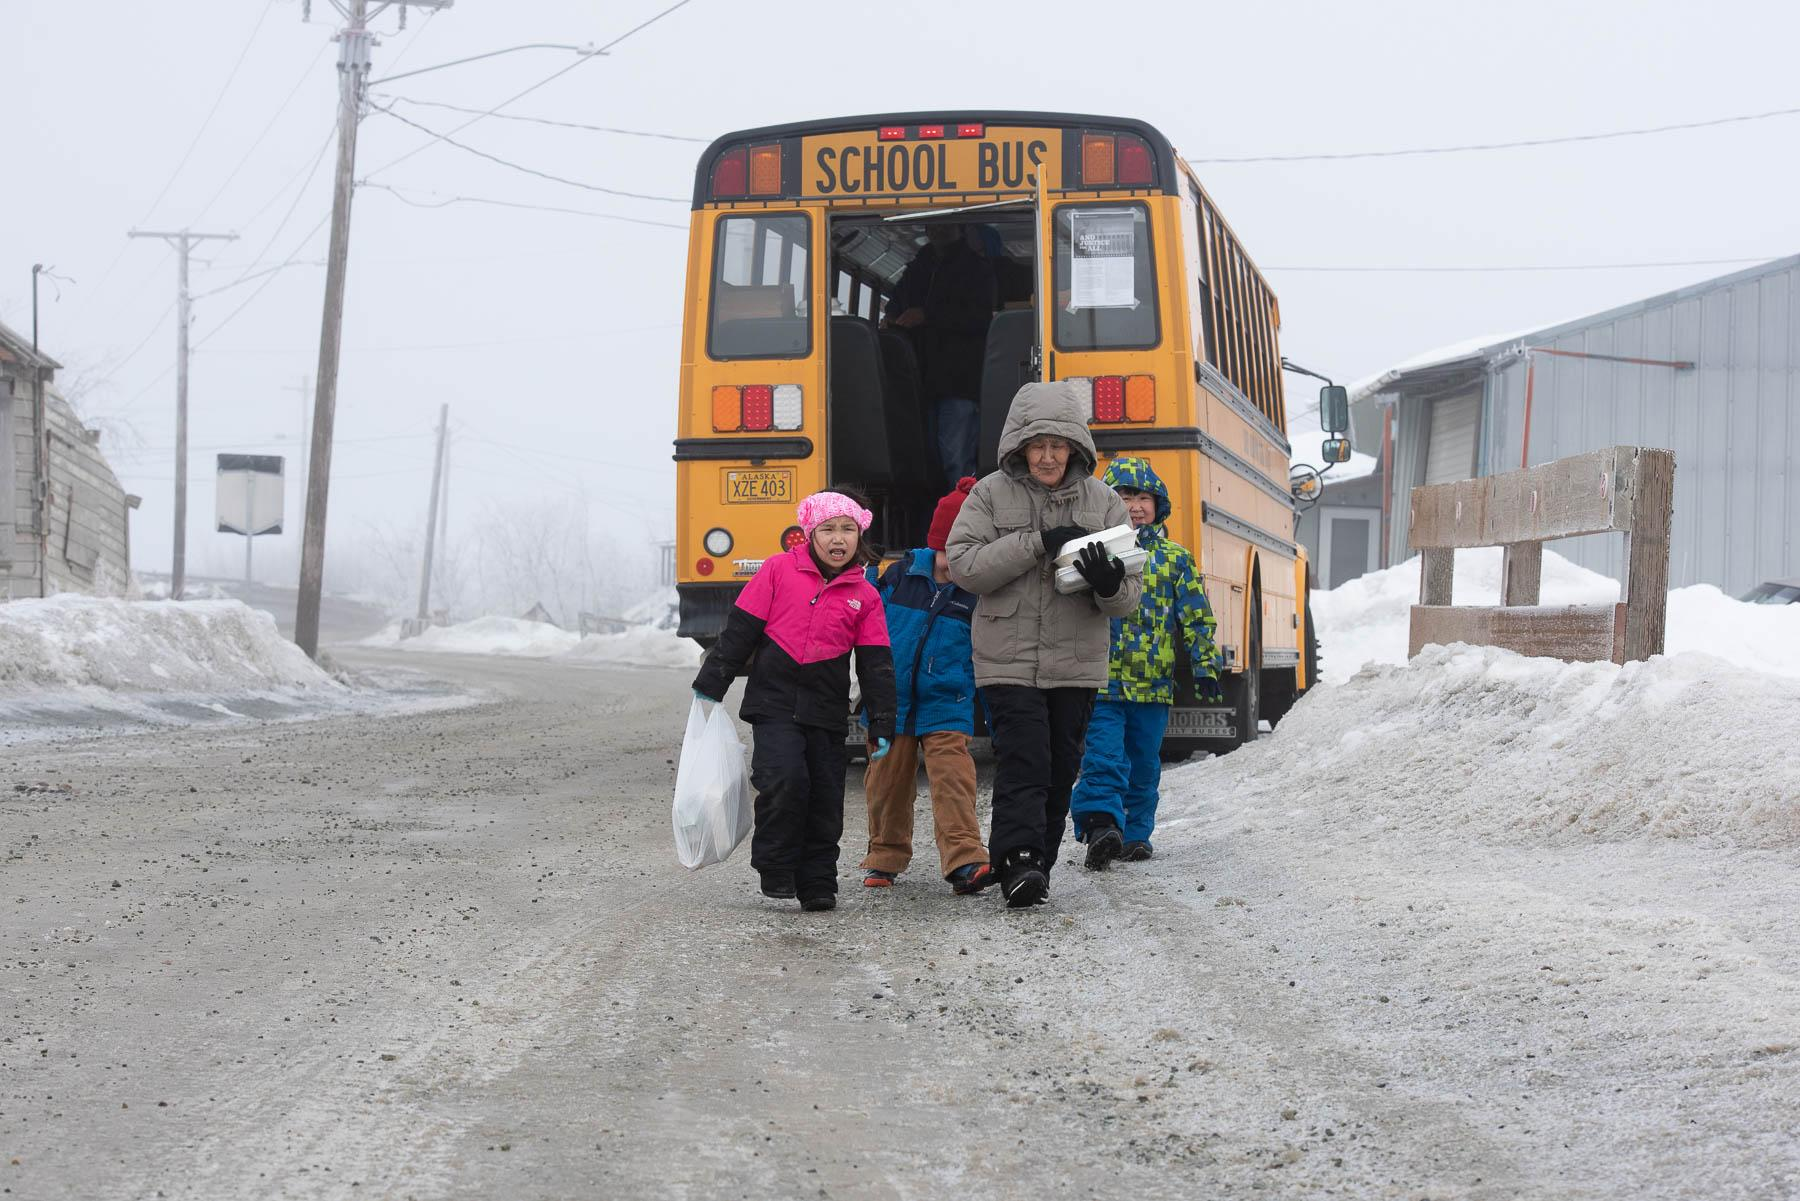 School children and their guardians picked up meals from bus stops around town on March 23, 2020. Schools across Alaska are closed following a state mandate put in place to slow the spread of COVID-19.